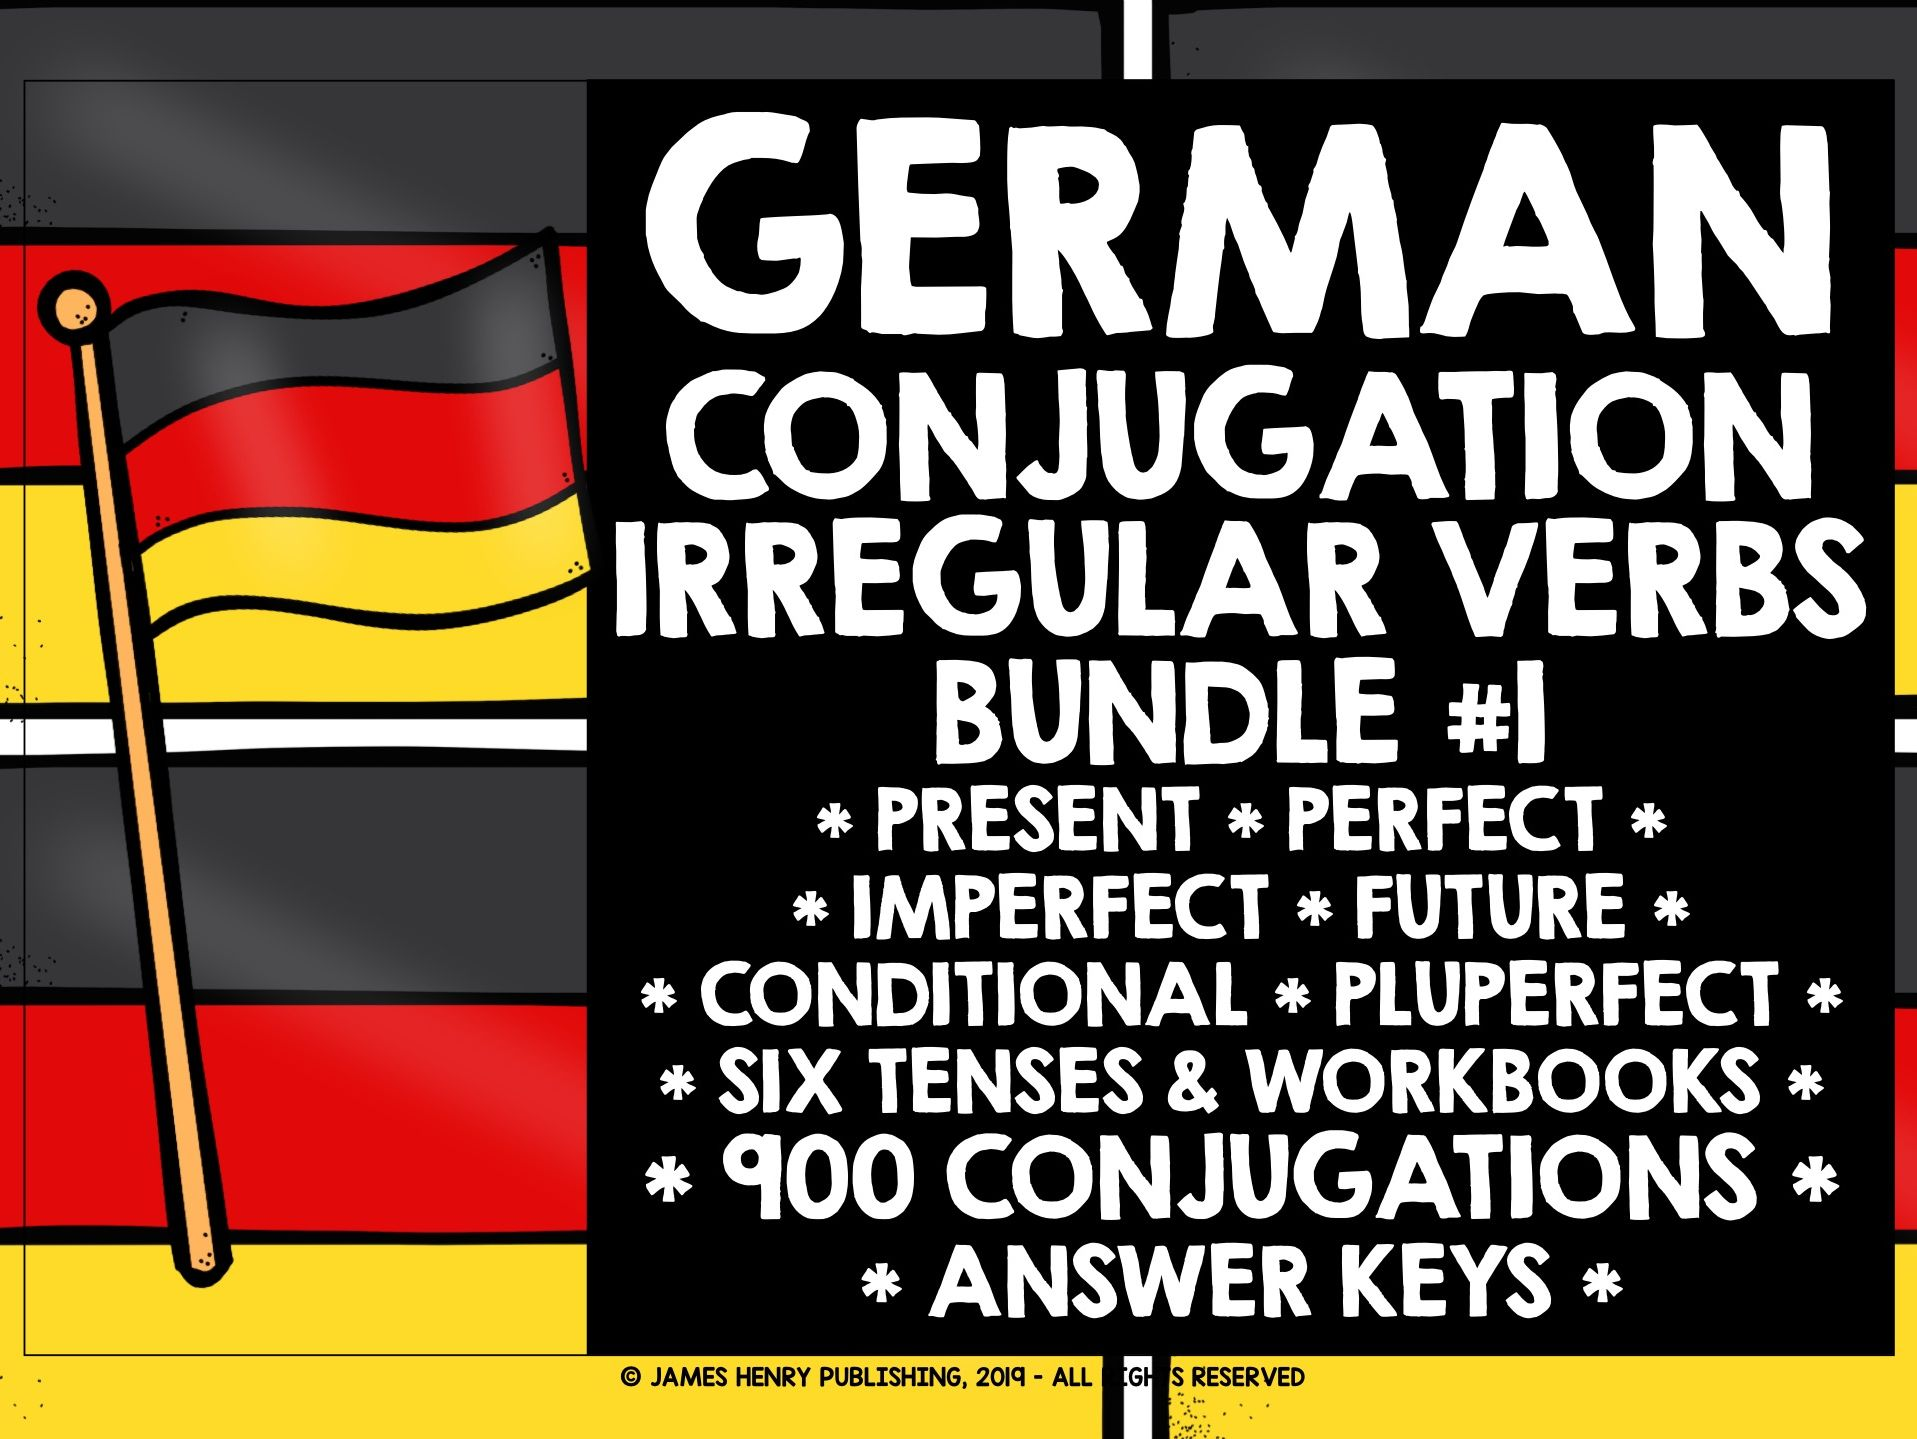 GERMAN IRREGULAR VERBS CONJUGATION BUNDLE #1